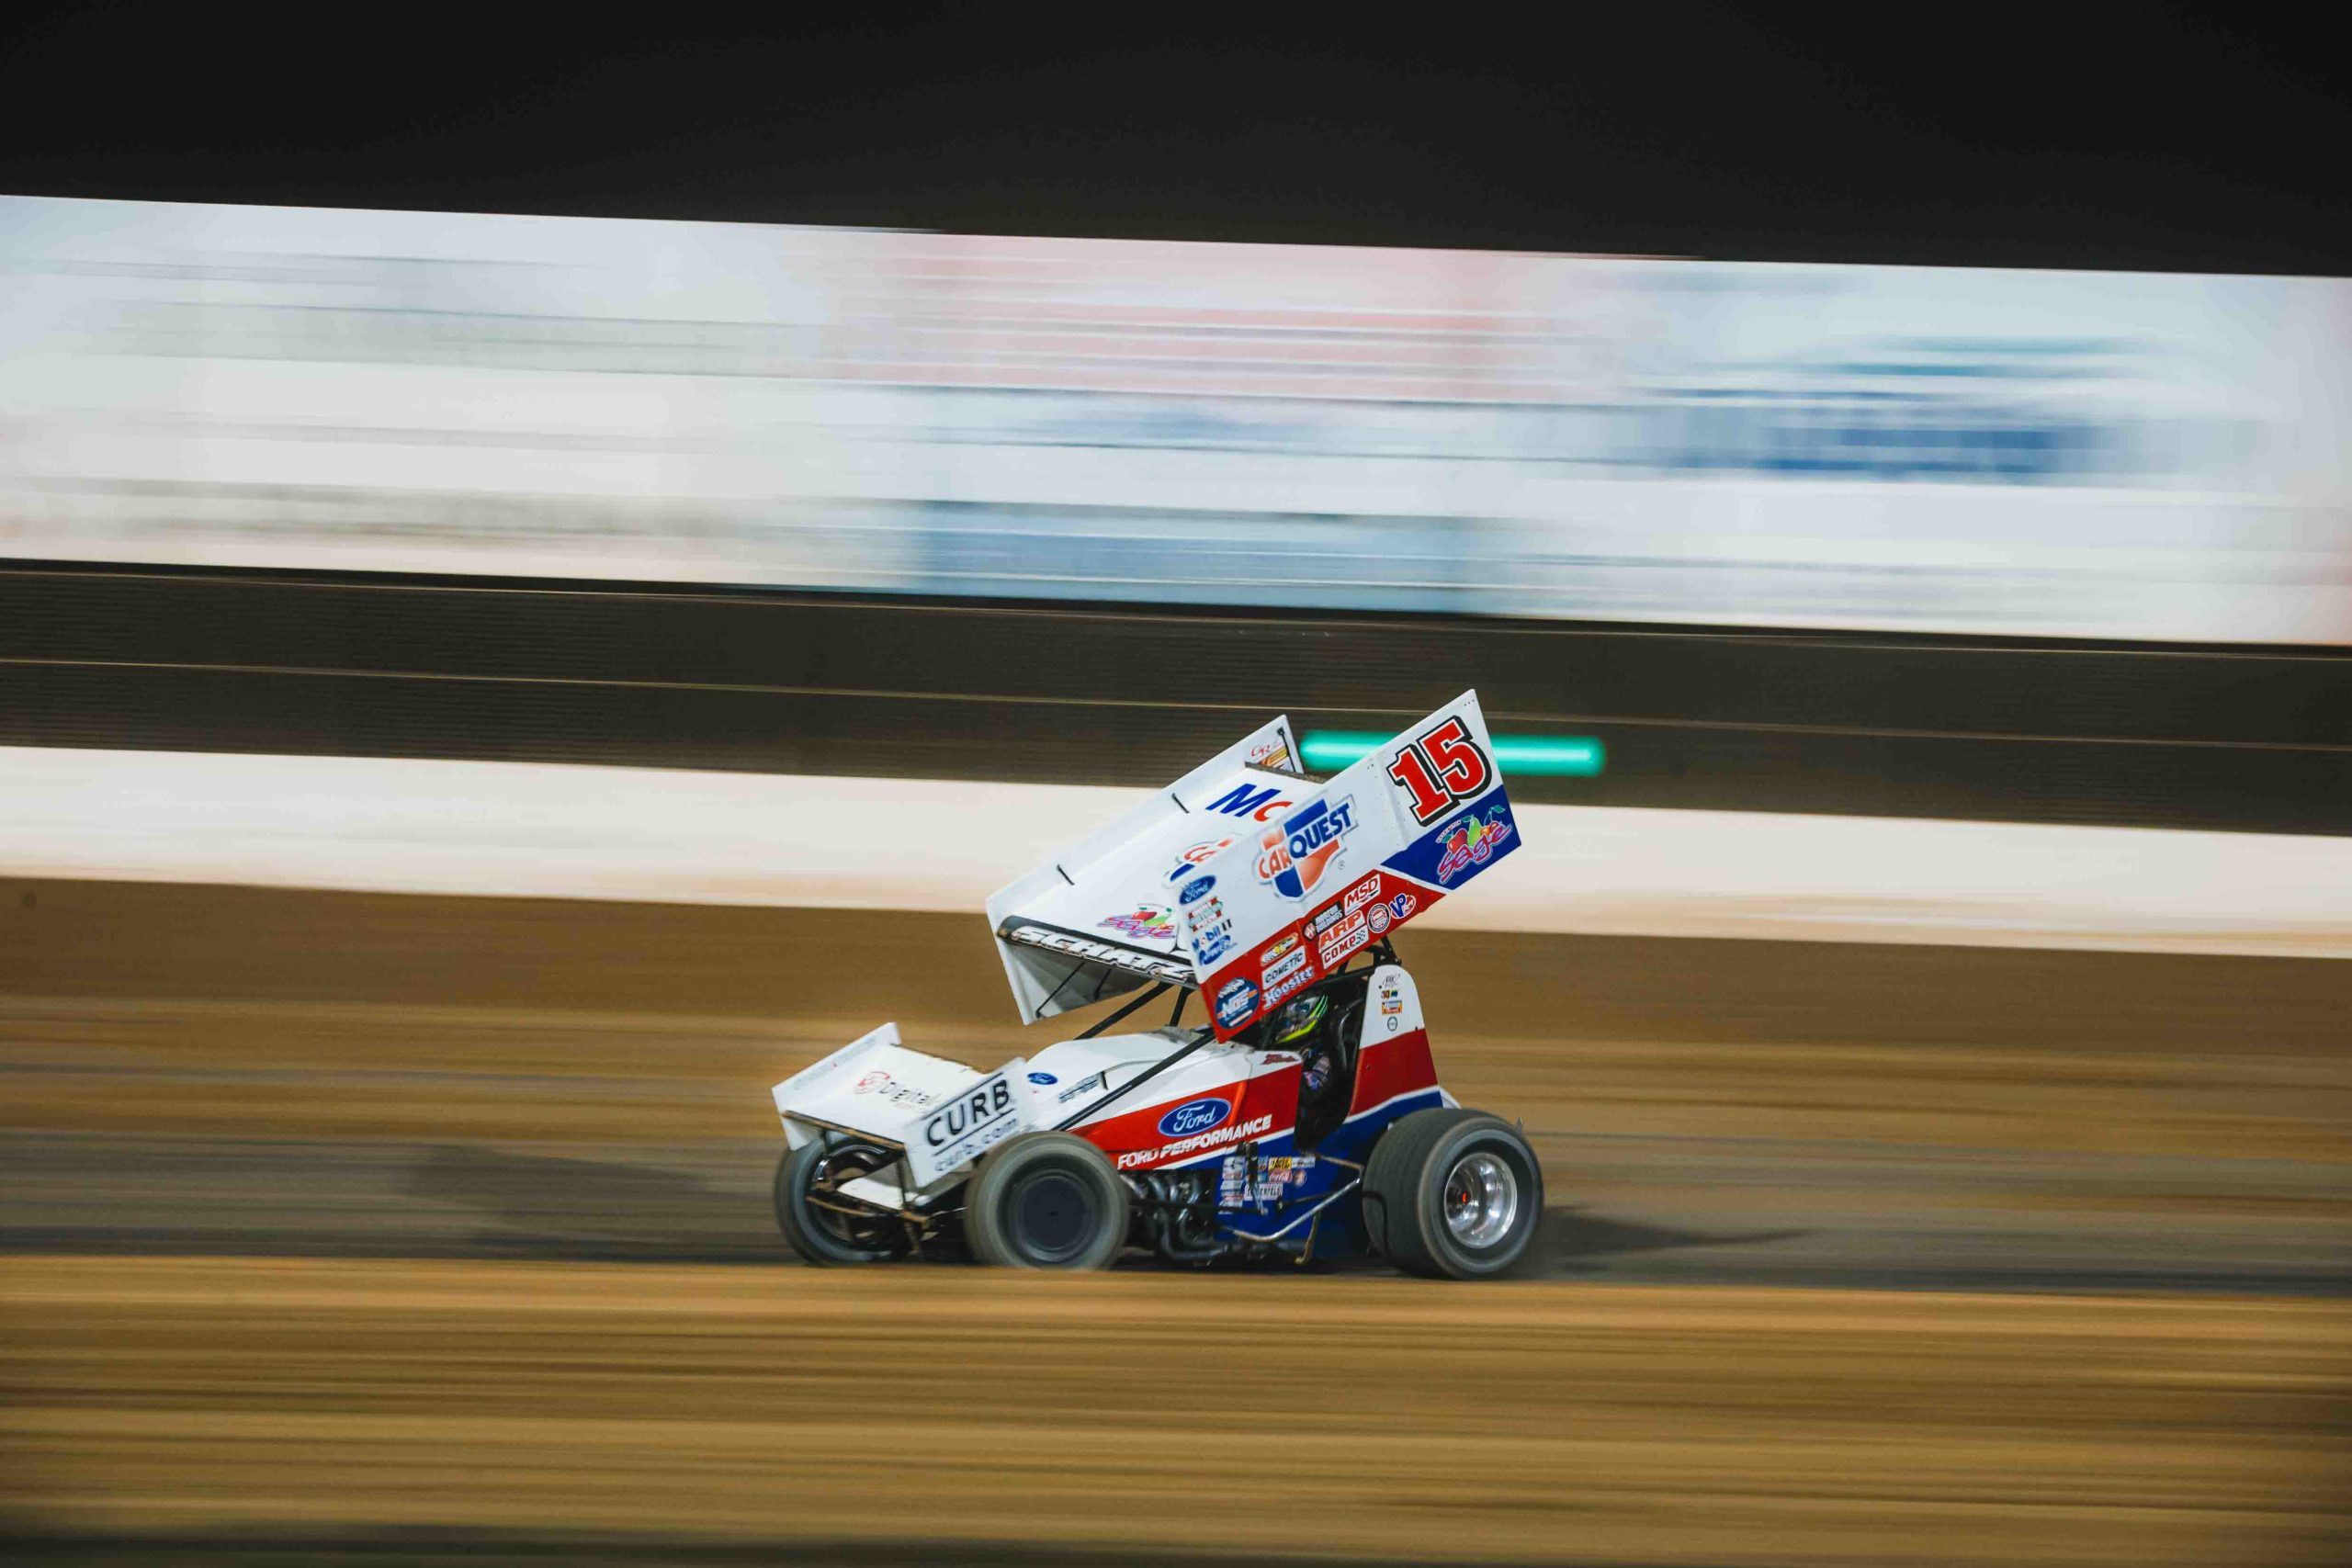 donny schatz, lakeside speedway, tony stewart racing, world of outlaws, sprint cars